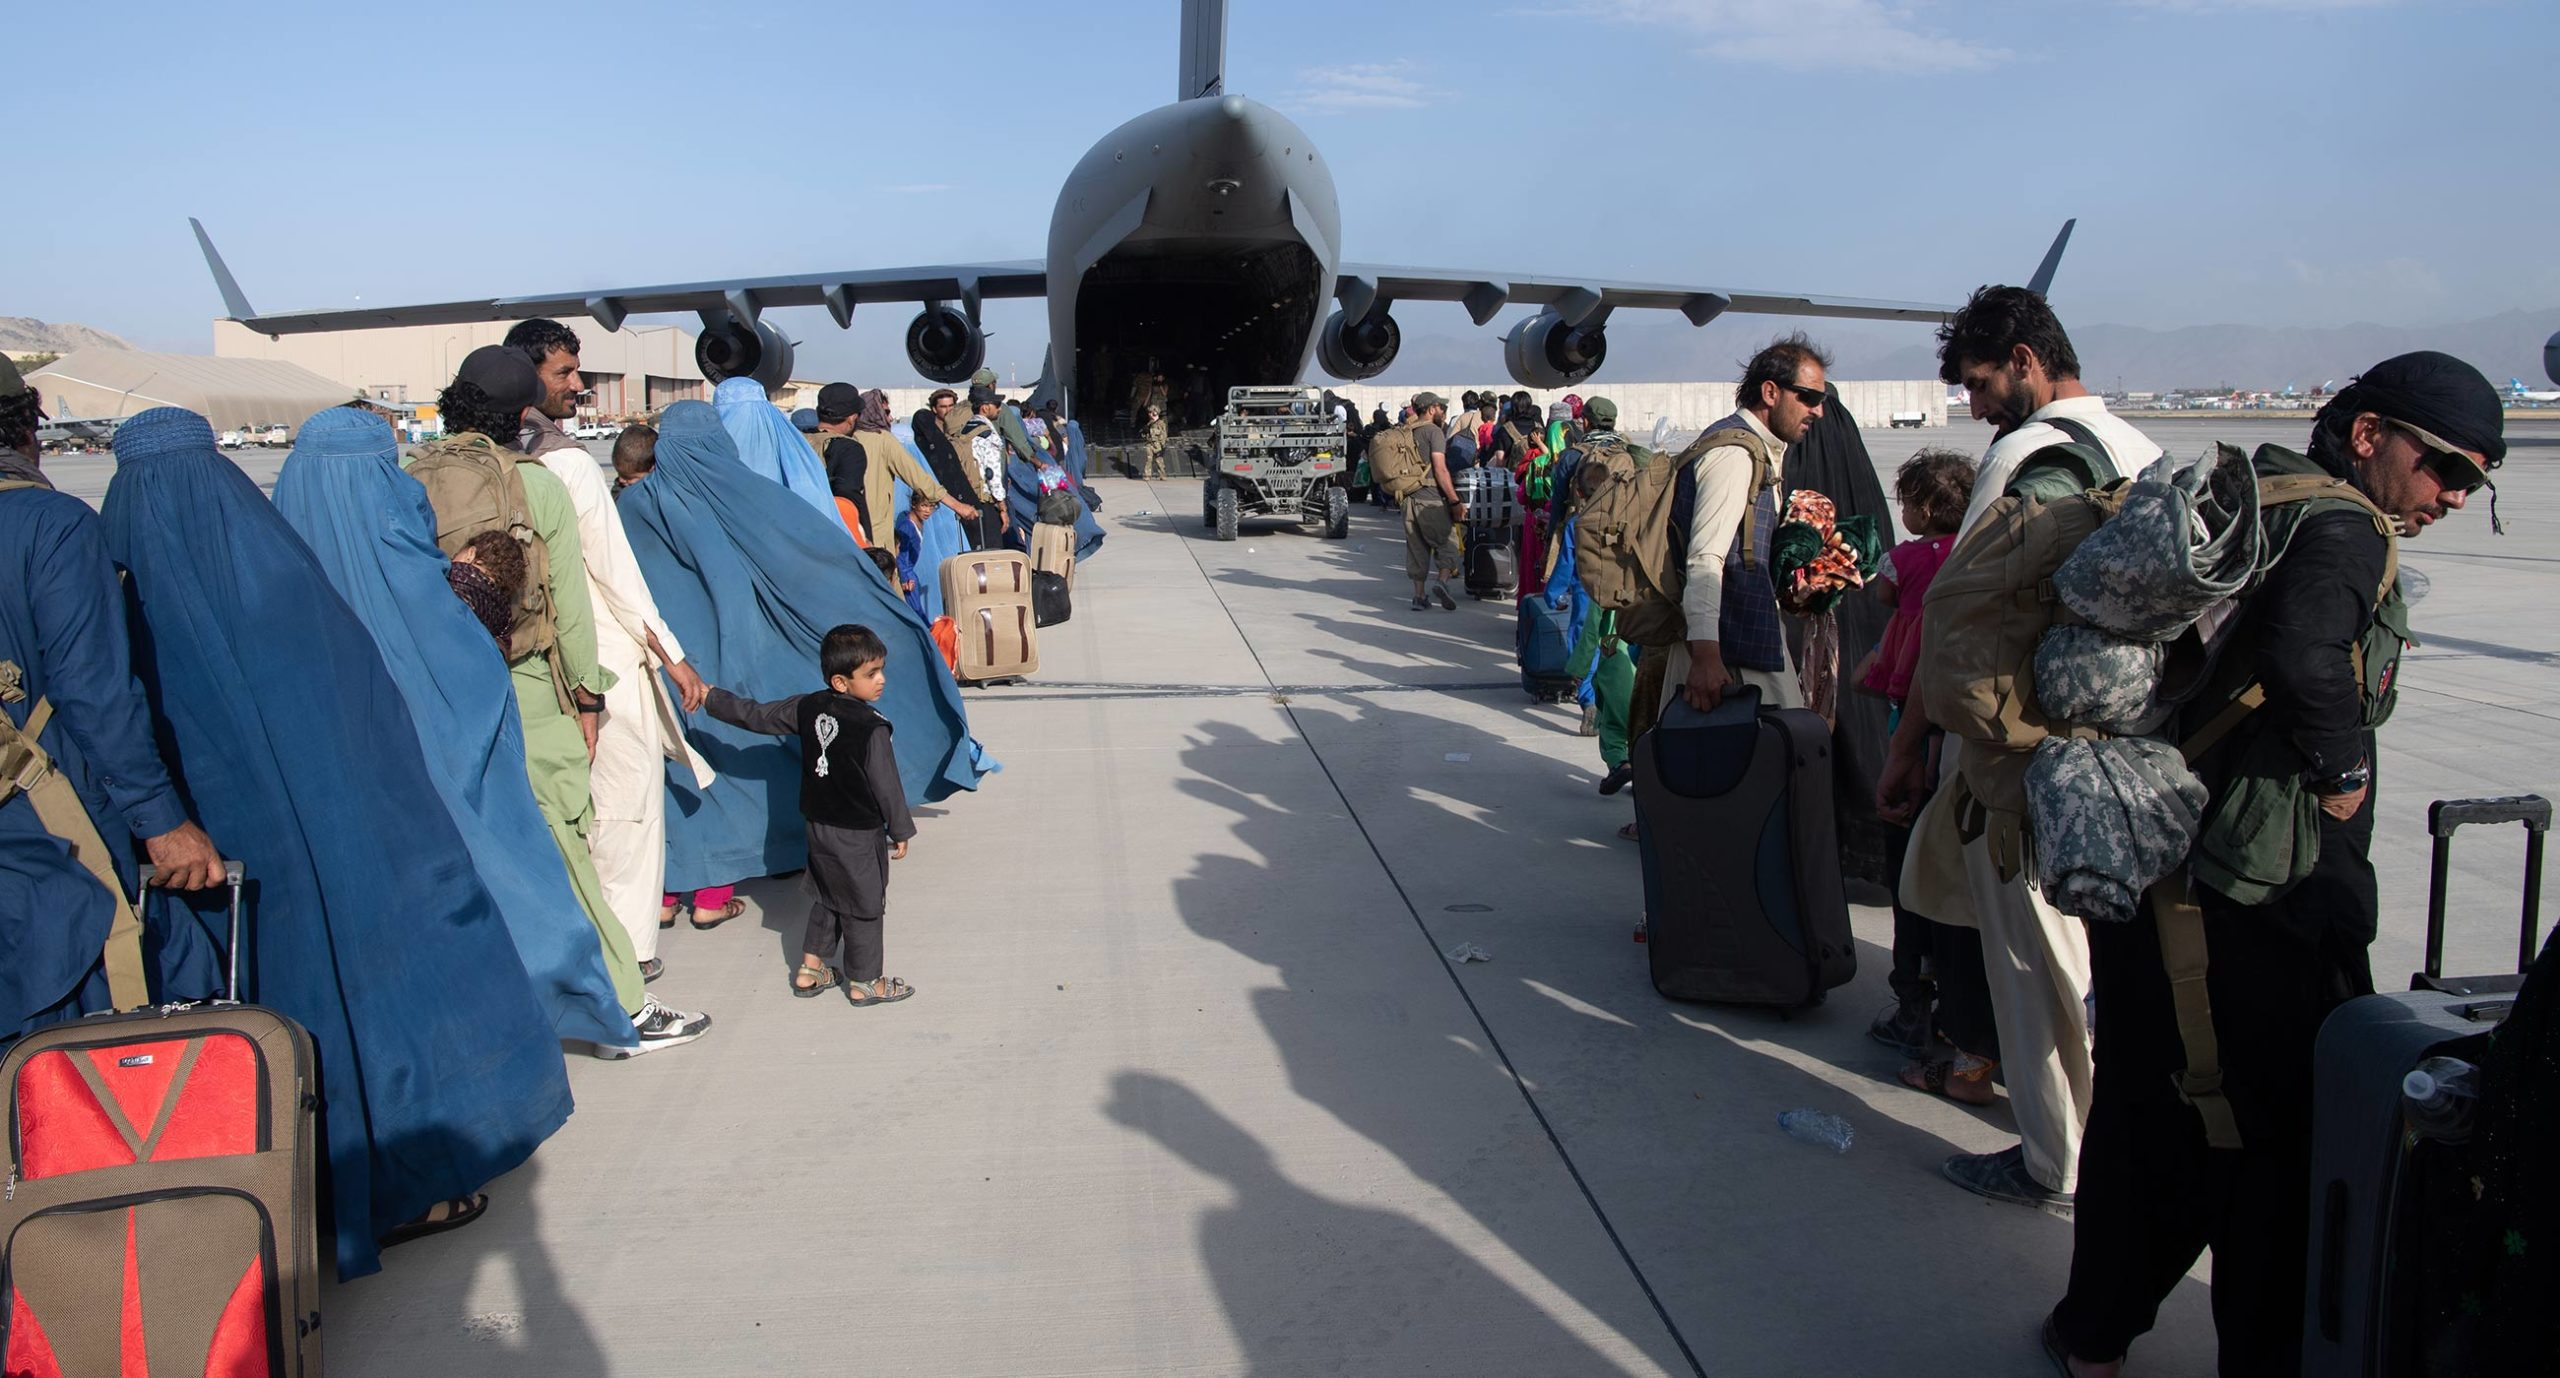 Ukrainian Families Wait for Evacuation from Kabul. But Ukraine's Foreign Ministry Says No More Evacuations Are Planned